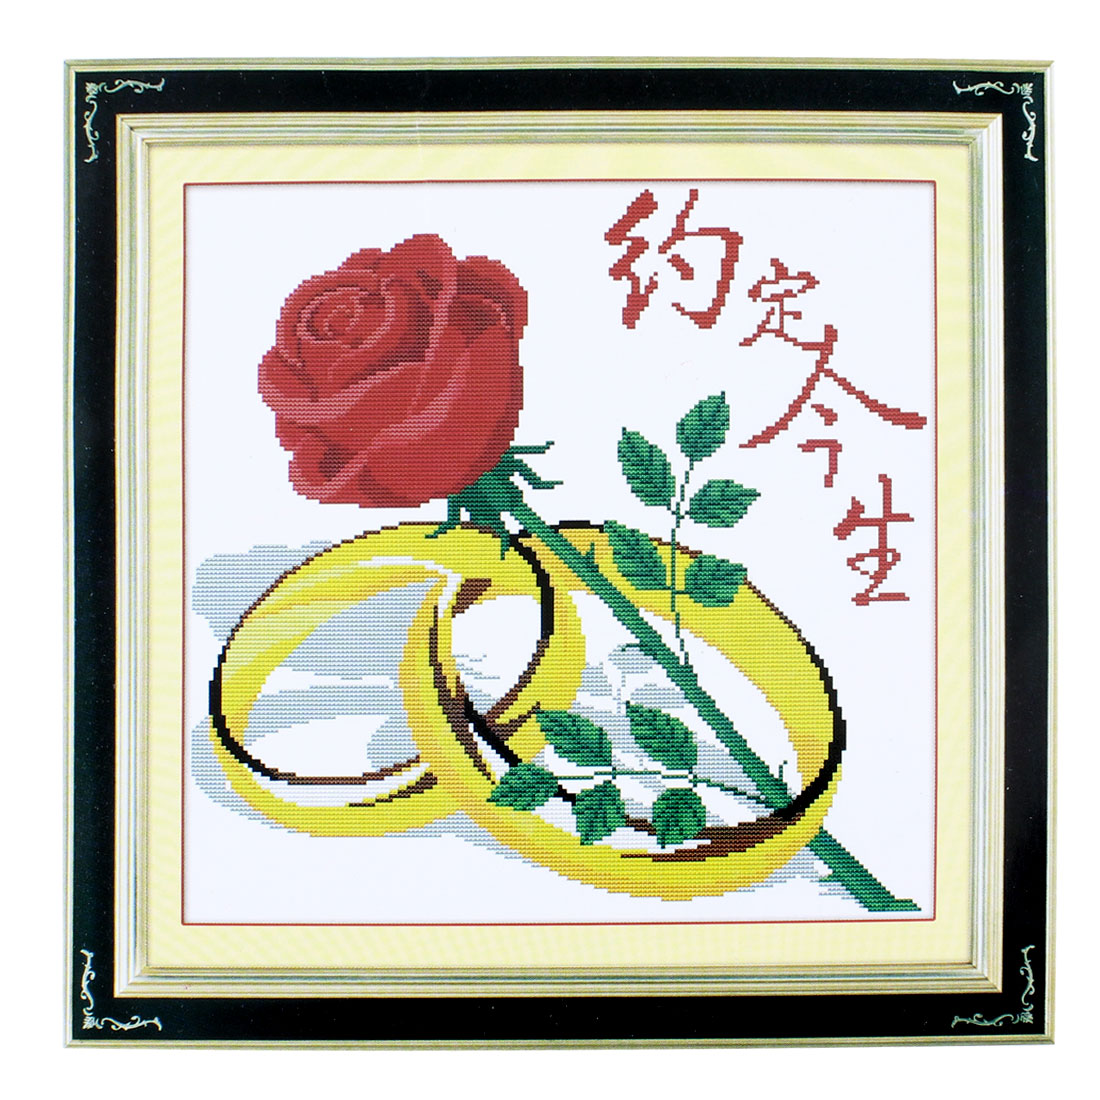 Flower Ring Pattern Stamped Cross Stitch Counted Kit for Lady Woman